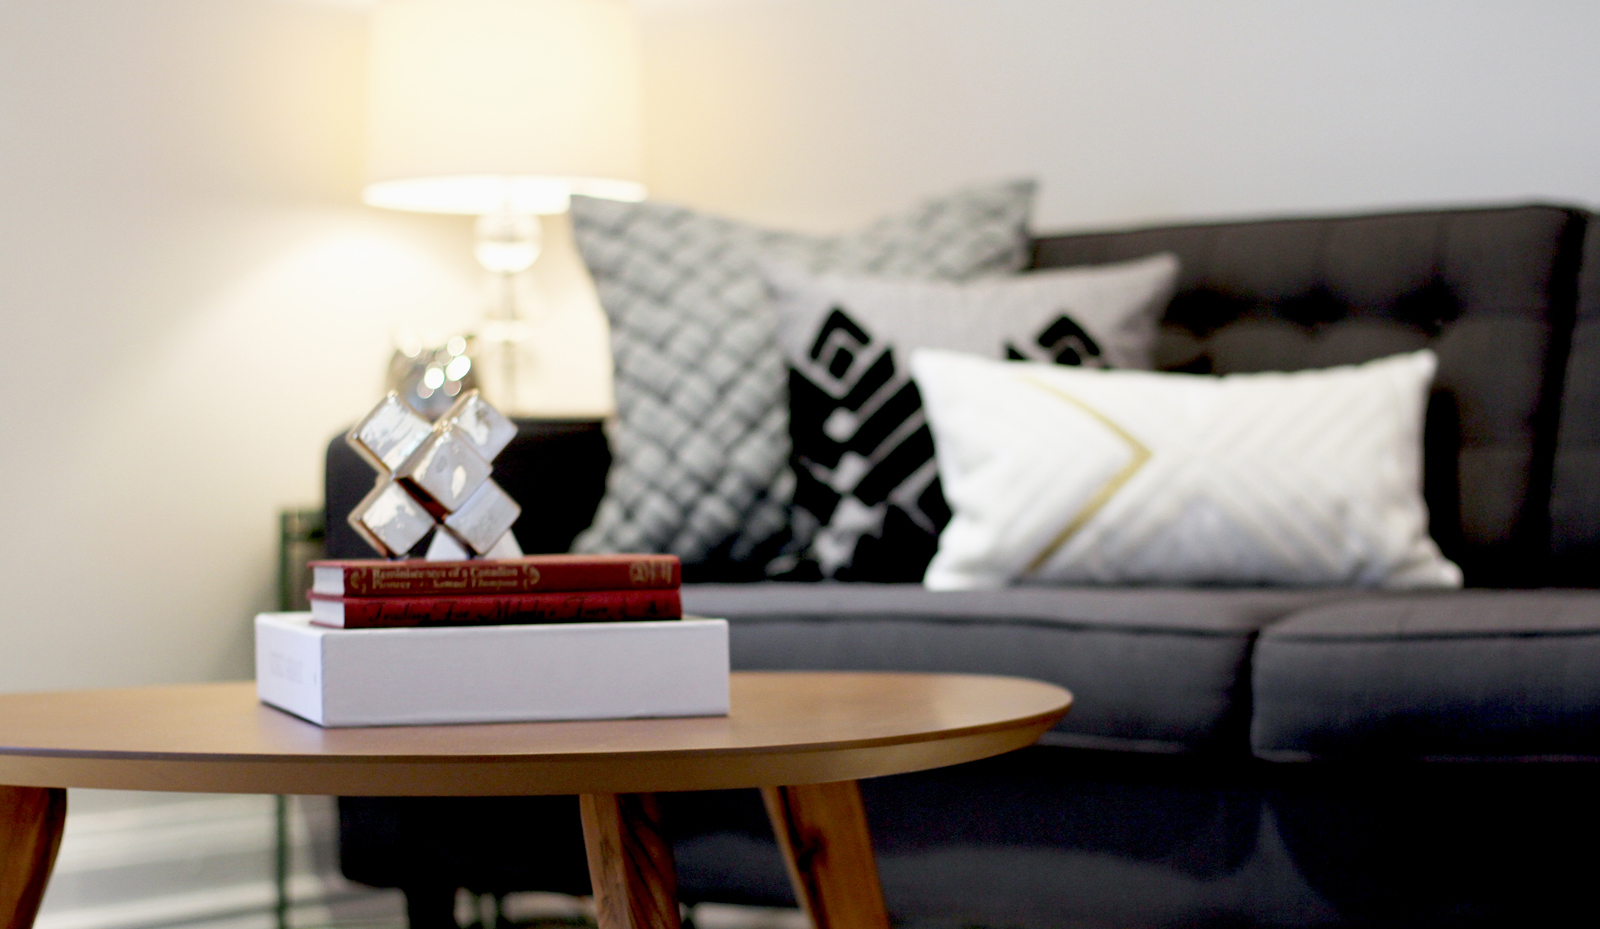 A living room with a wooden coffee table in the foreground with a stack of books on top. Sofa with throw pillows in the background with a side table and illuminated table lamp. Airbnb staging example